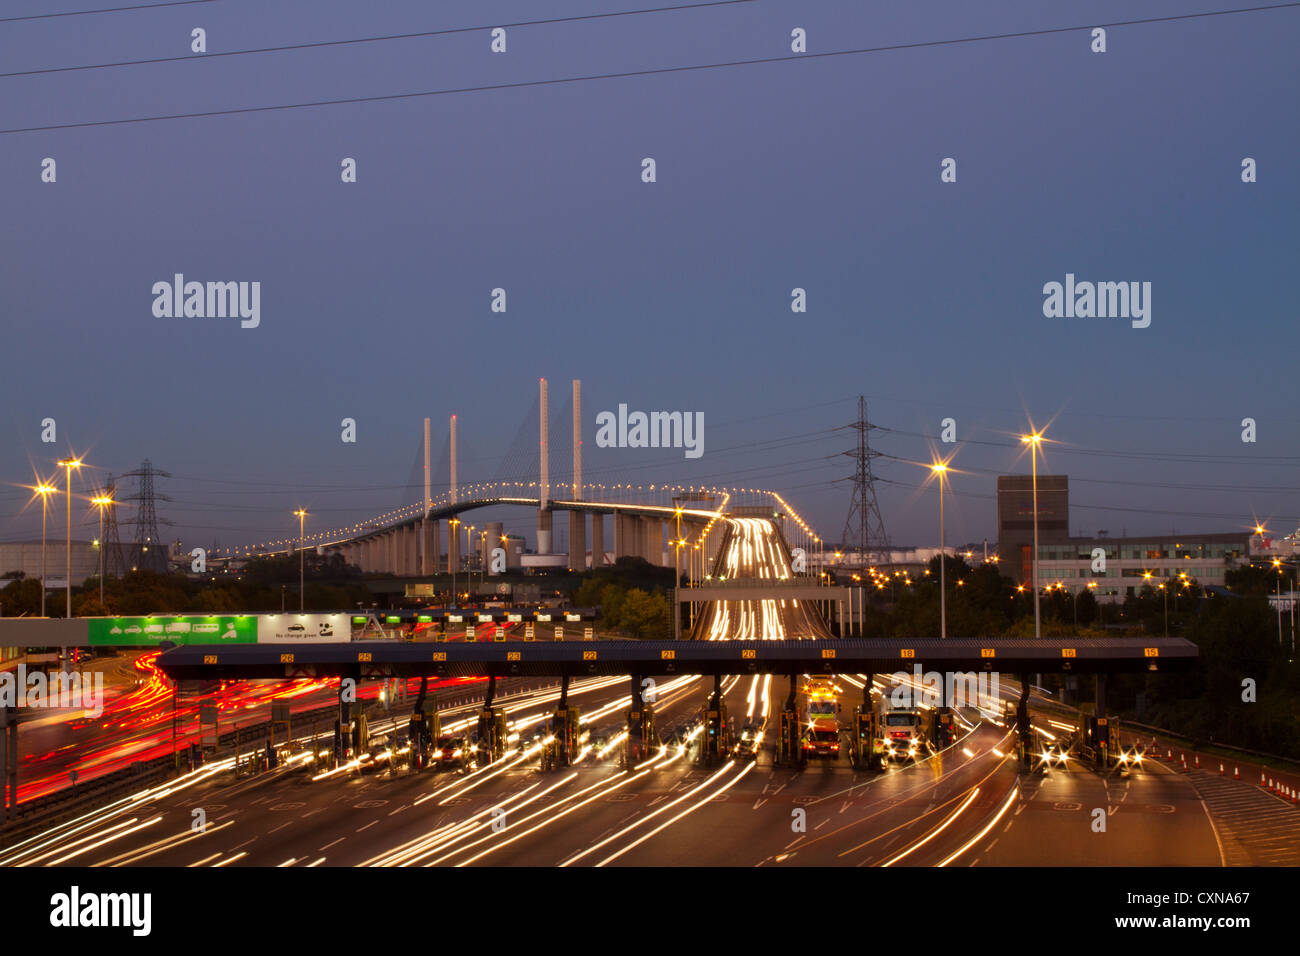 Toll booths at the Dartford River Crossing, on the M25, showing Queen Elizabeth 2nd Bridge. - Stock Image